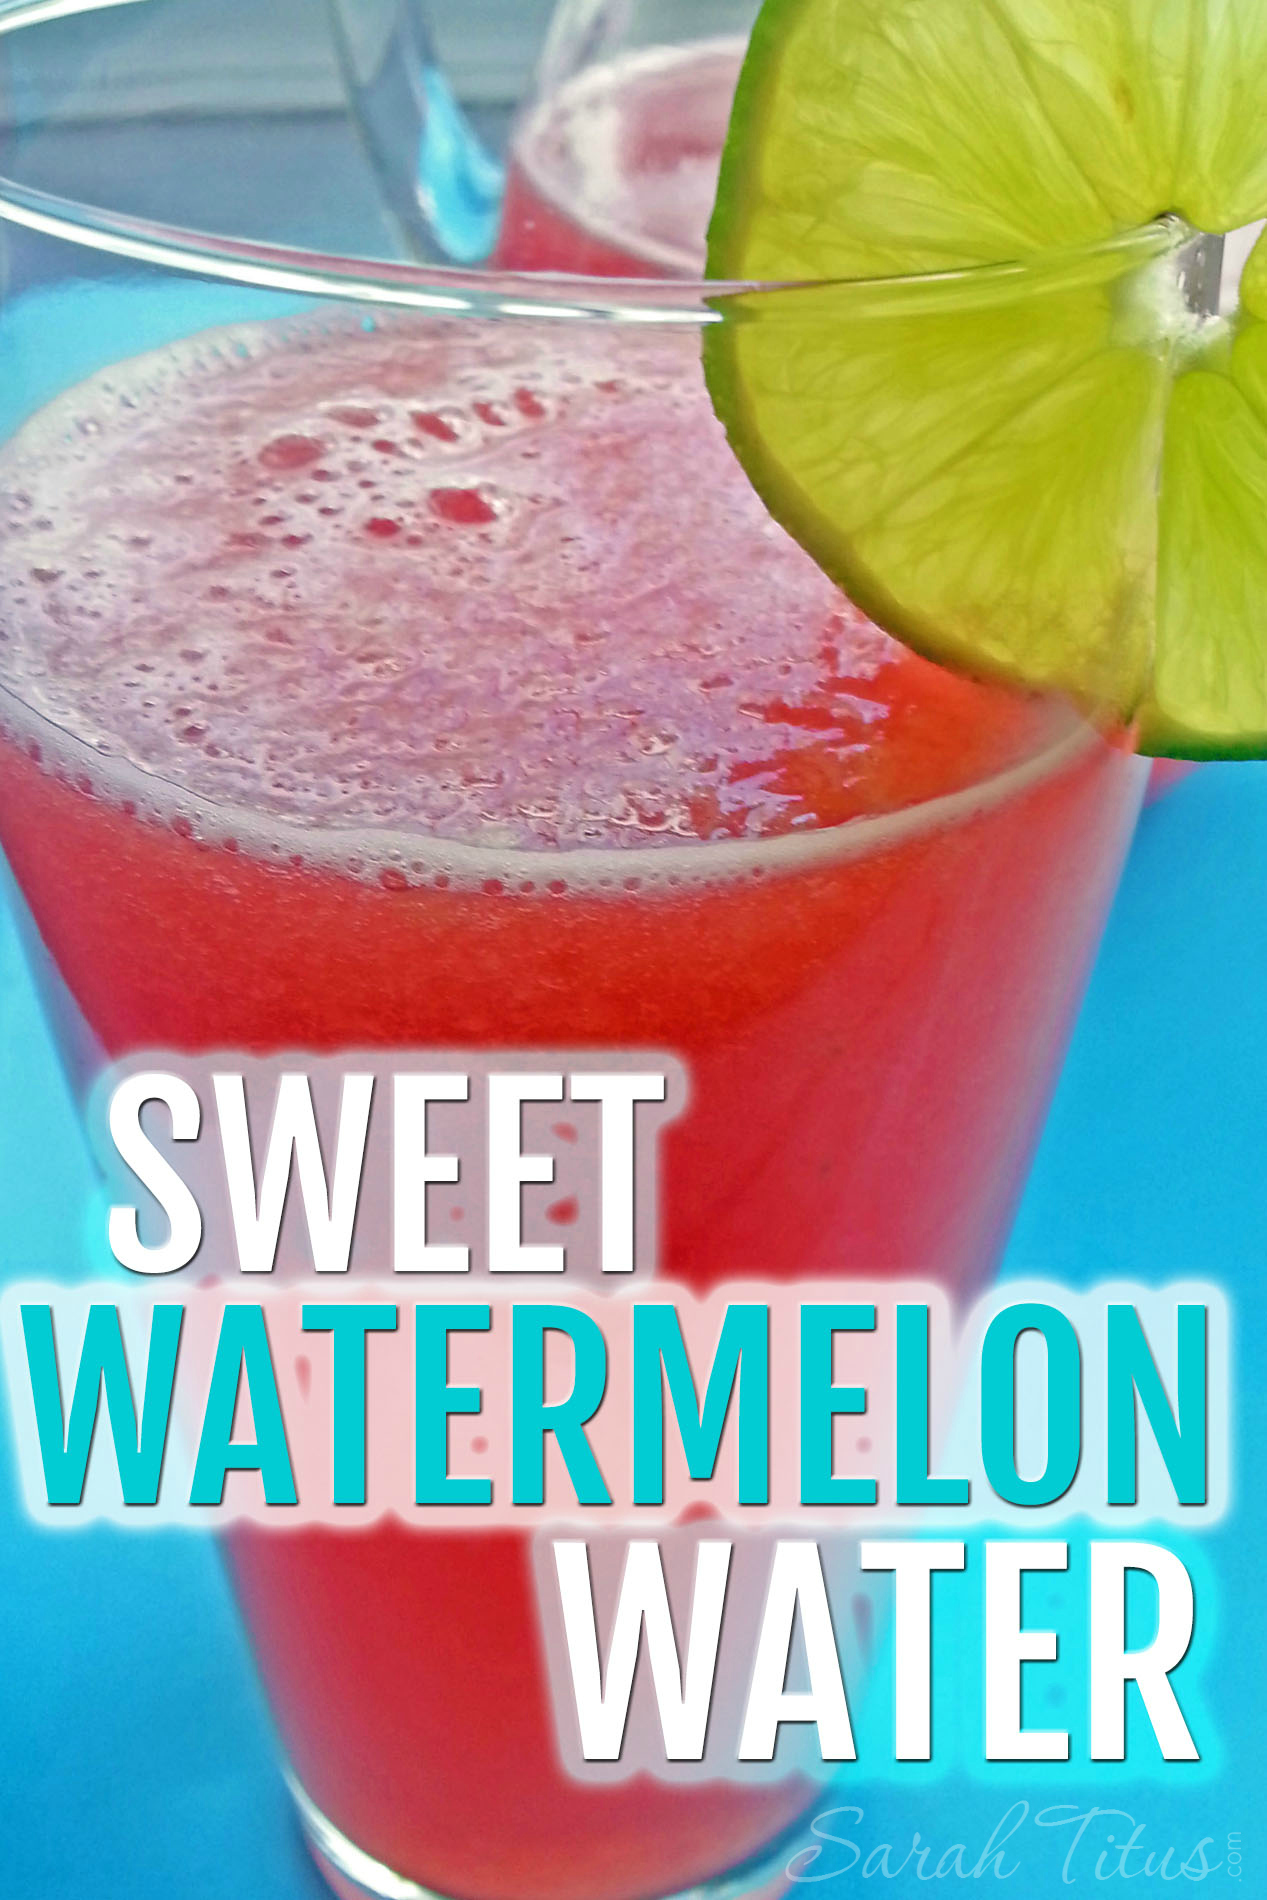 This watermelon water is my kids favorite! So tasty. Add some watermelon melon balls or freeze watermelon juice to give it more of a pop at your next party!